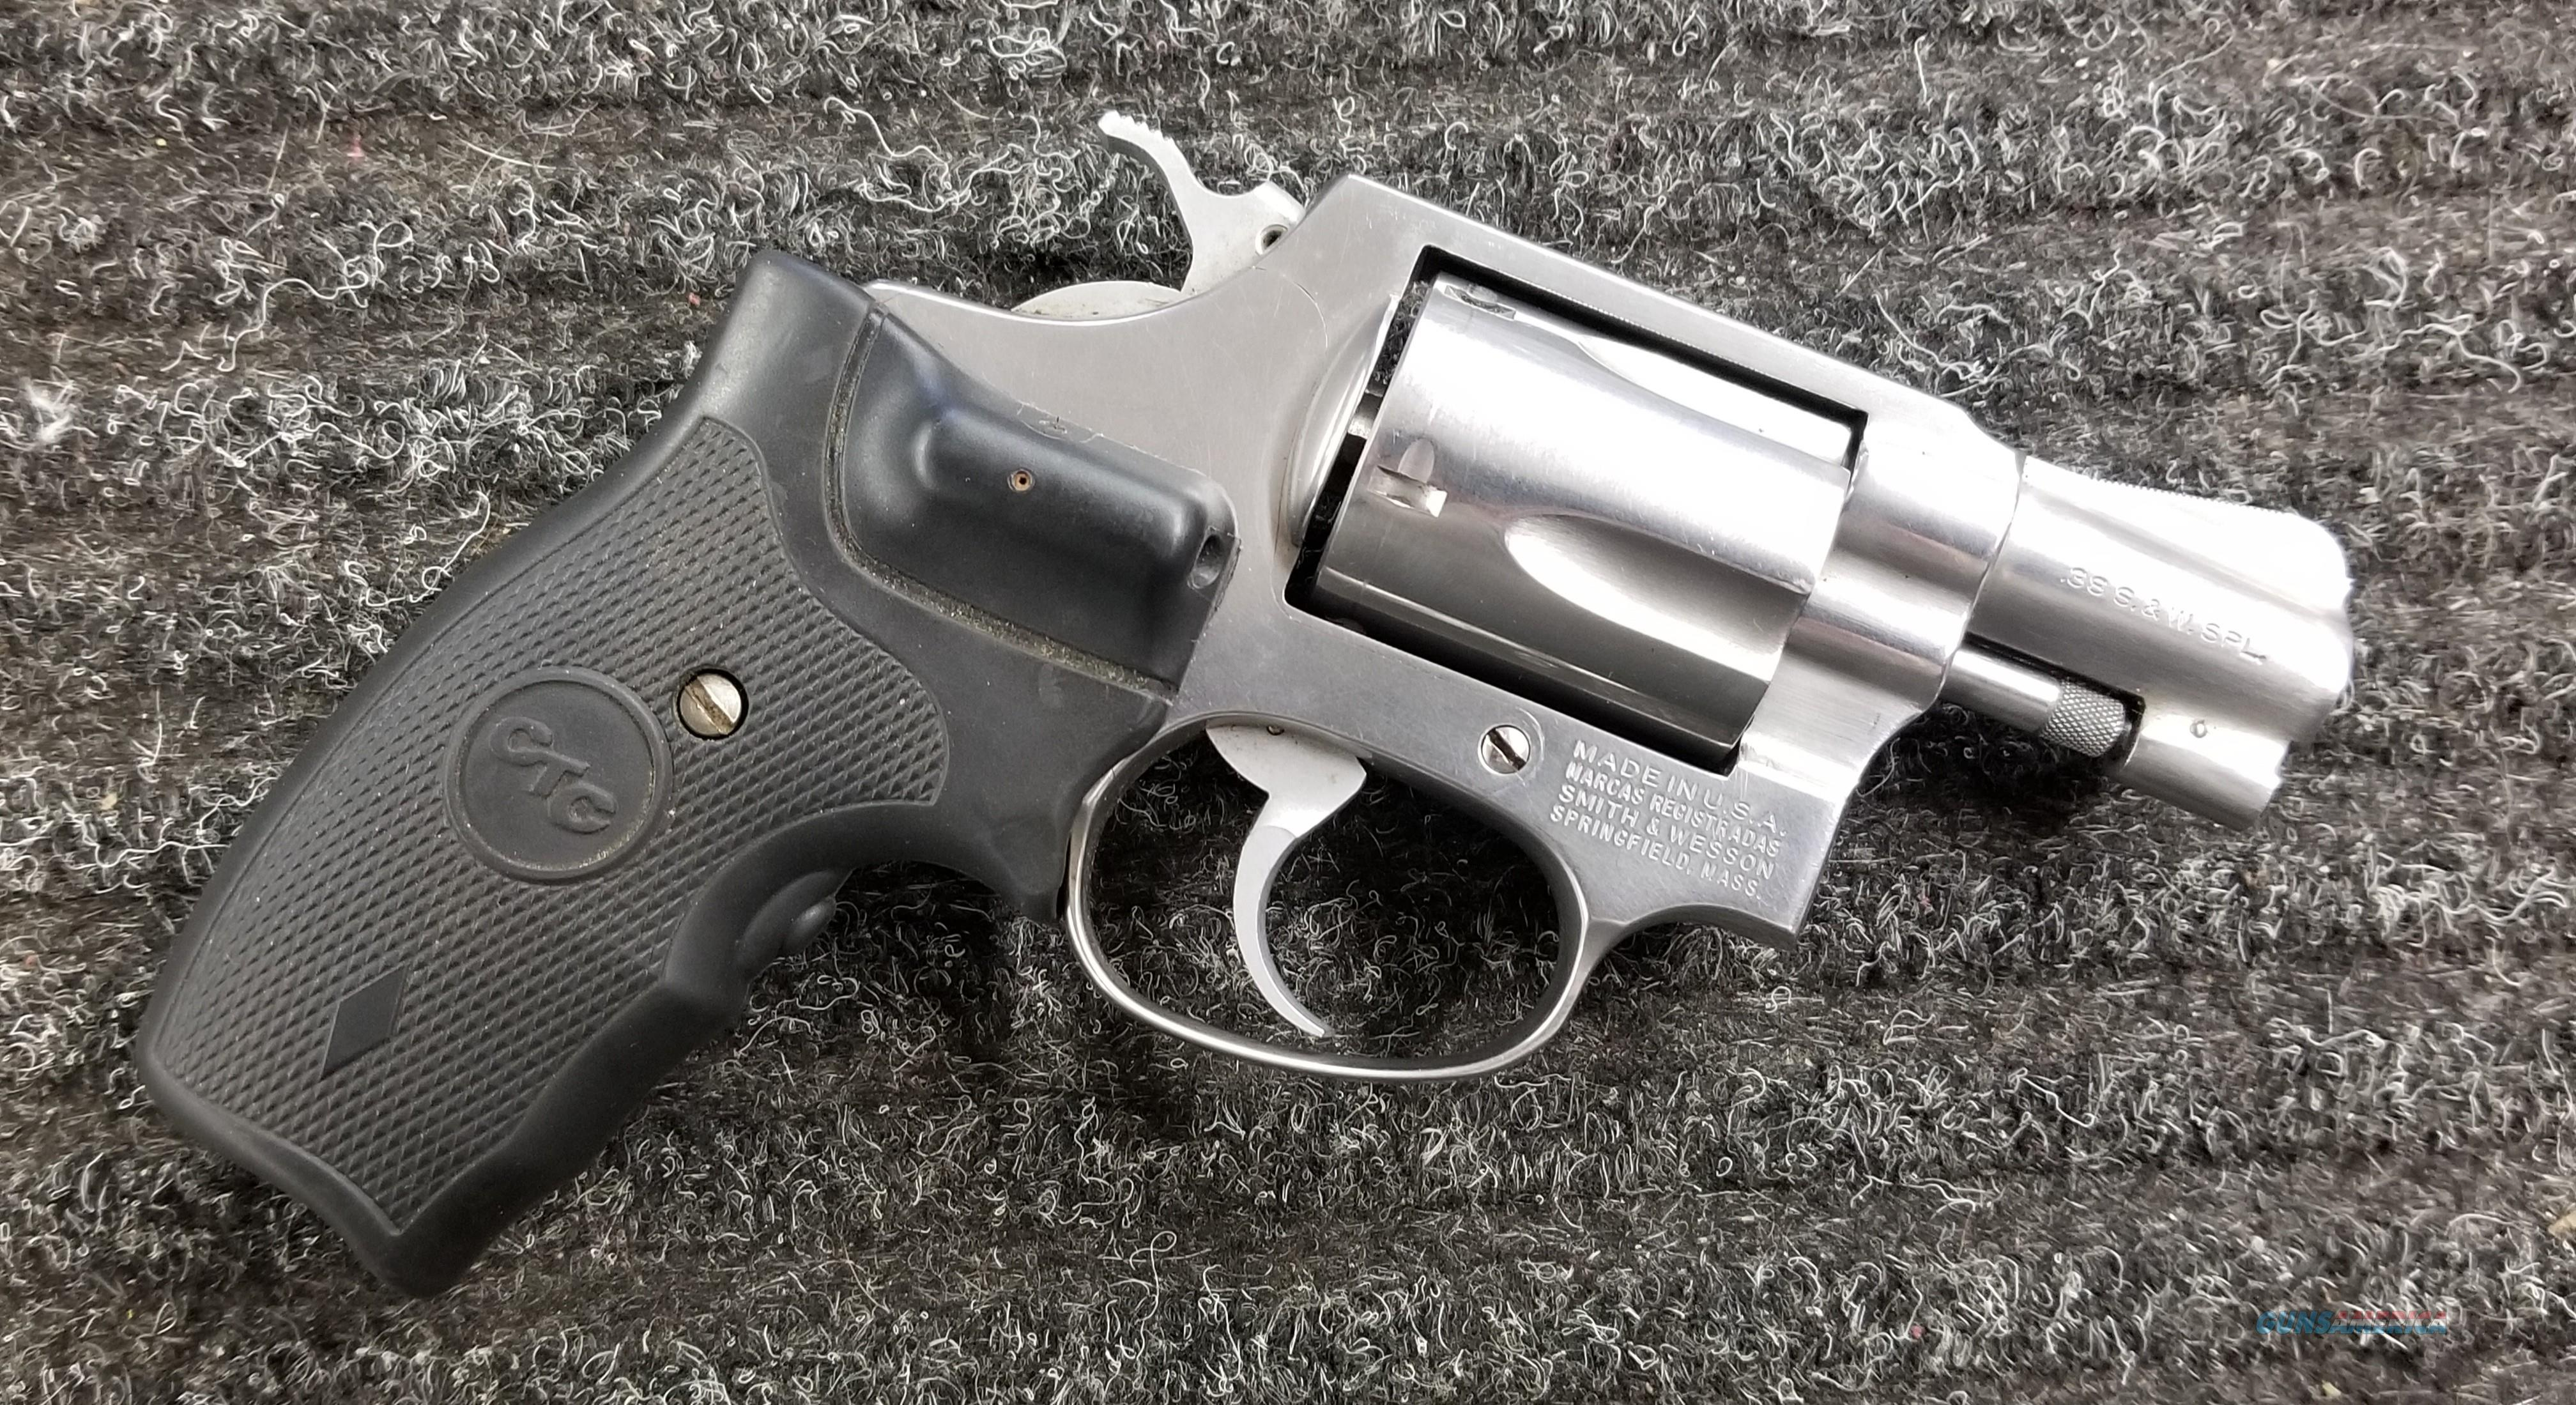 Smith & Wesson Model 60 Stainless 38 Special - CTC Laser Grip - Custom Holster - Free Shipping !  Guns > Pistols > Smith & Wesson Revolvers > Small Frame ( J )